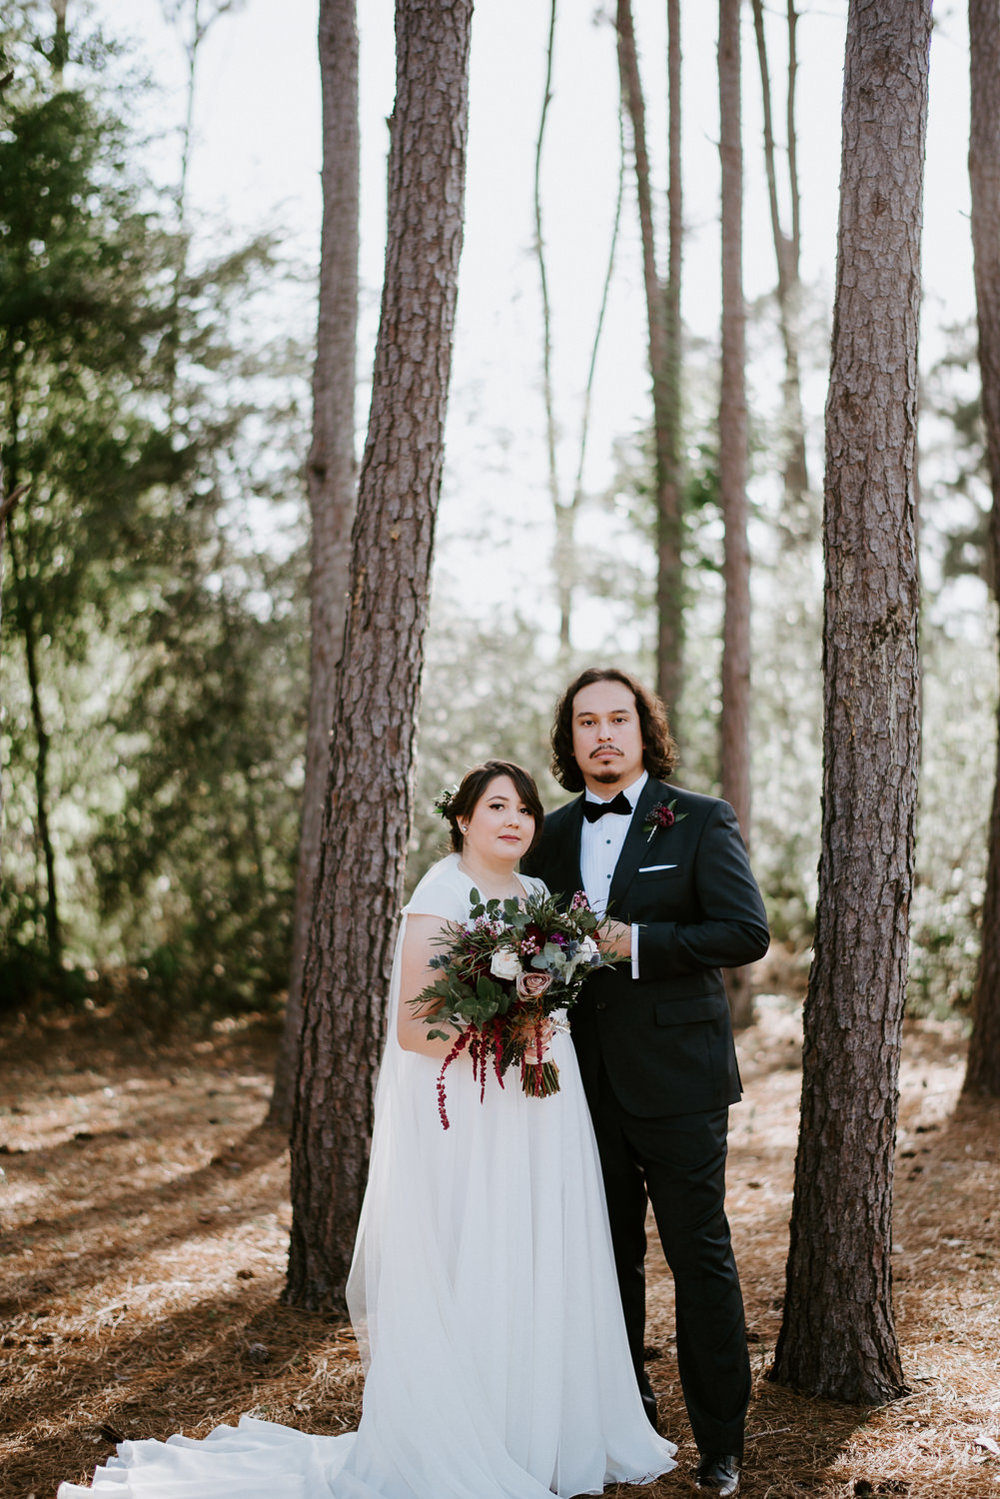 formal bride and groom portraits at the woodlands wedding